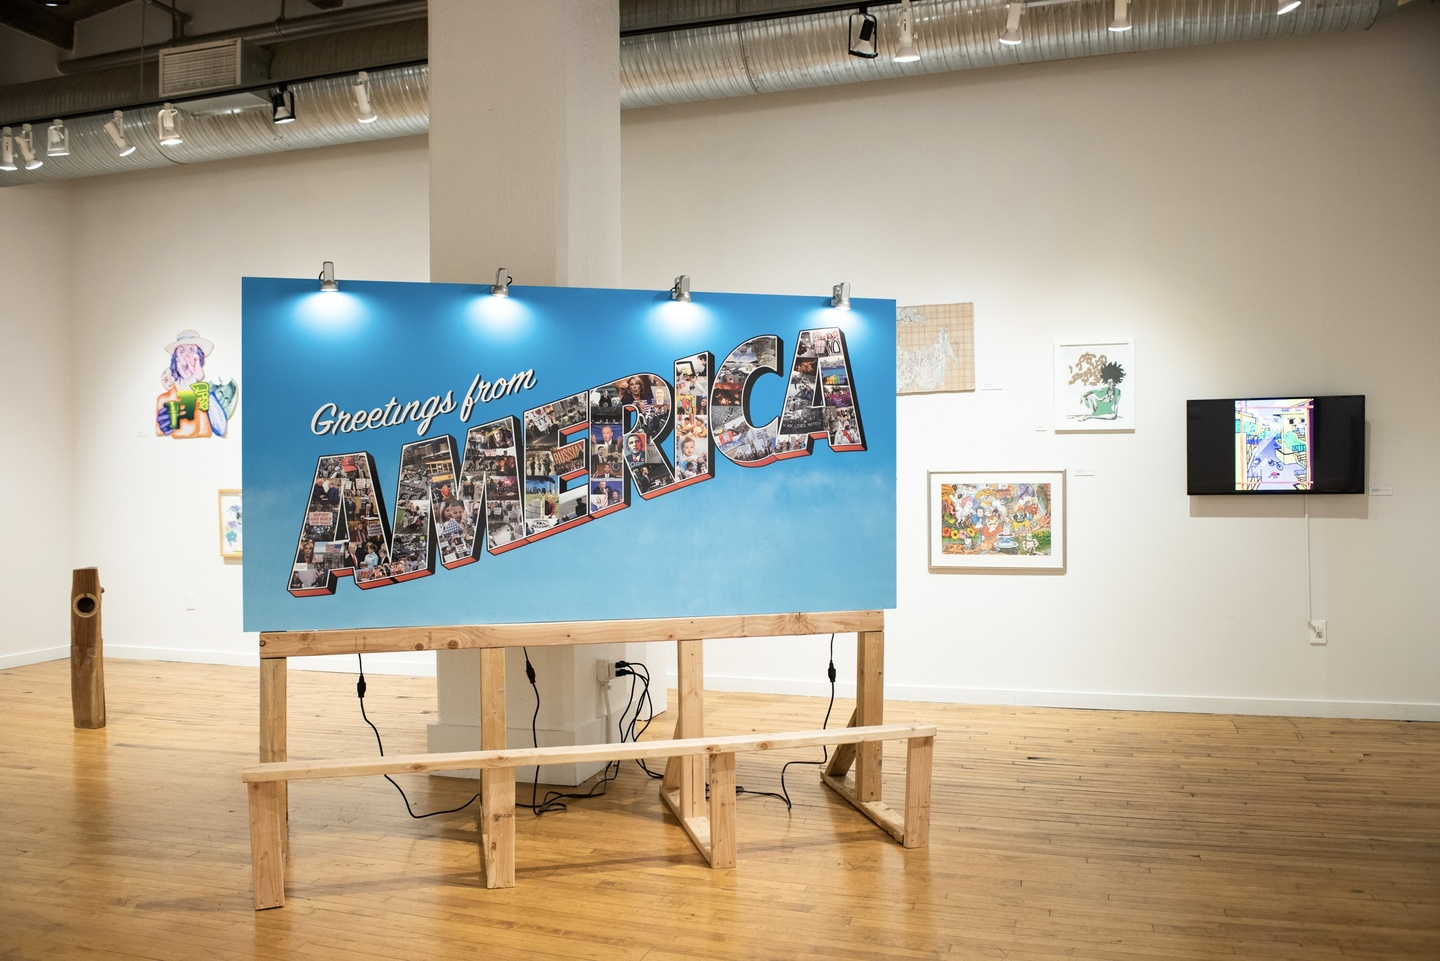 """Large, horizontally oriened vinyl sign on MDF, with a bright blue background. White script type says """"Greetings from"""" and the word AMERICA is in all caps with an outline, filled in with a variety of photos. In the background are other artworks hung on gallery walls."""